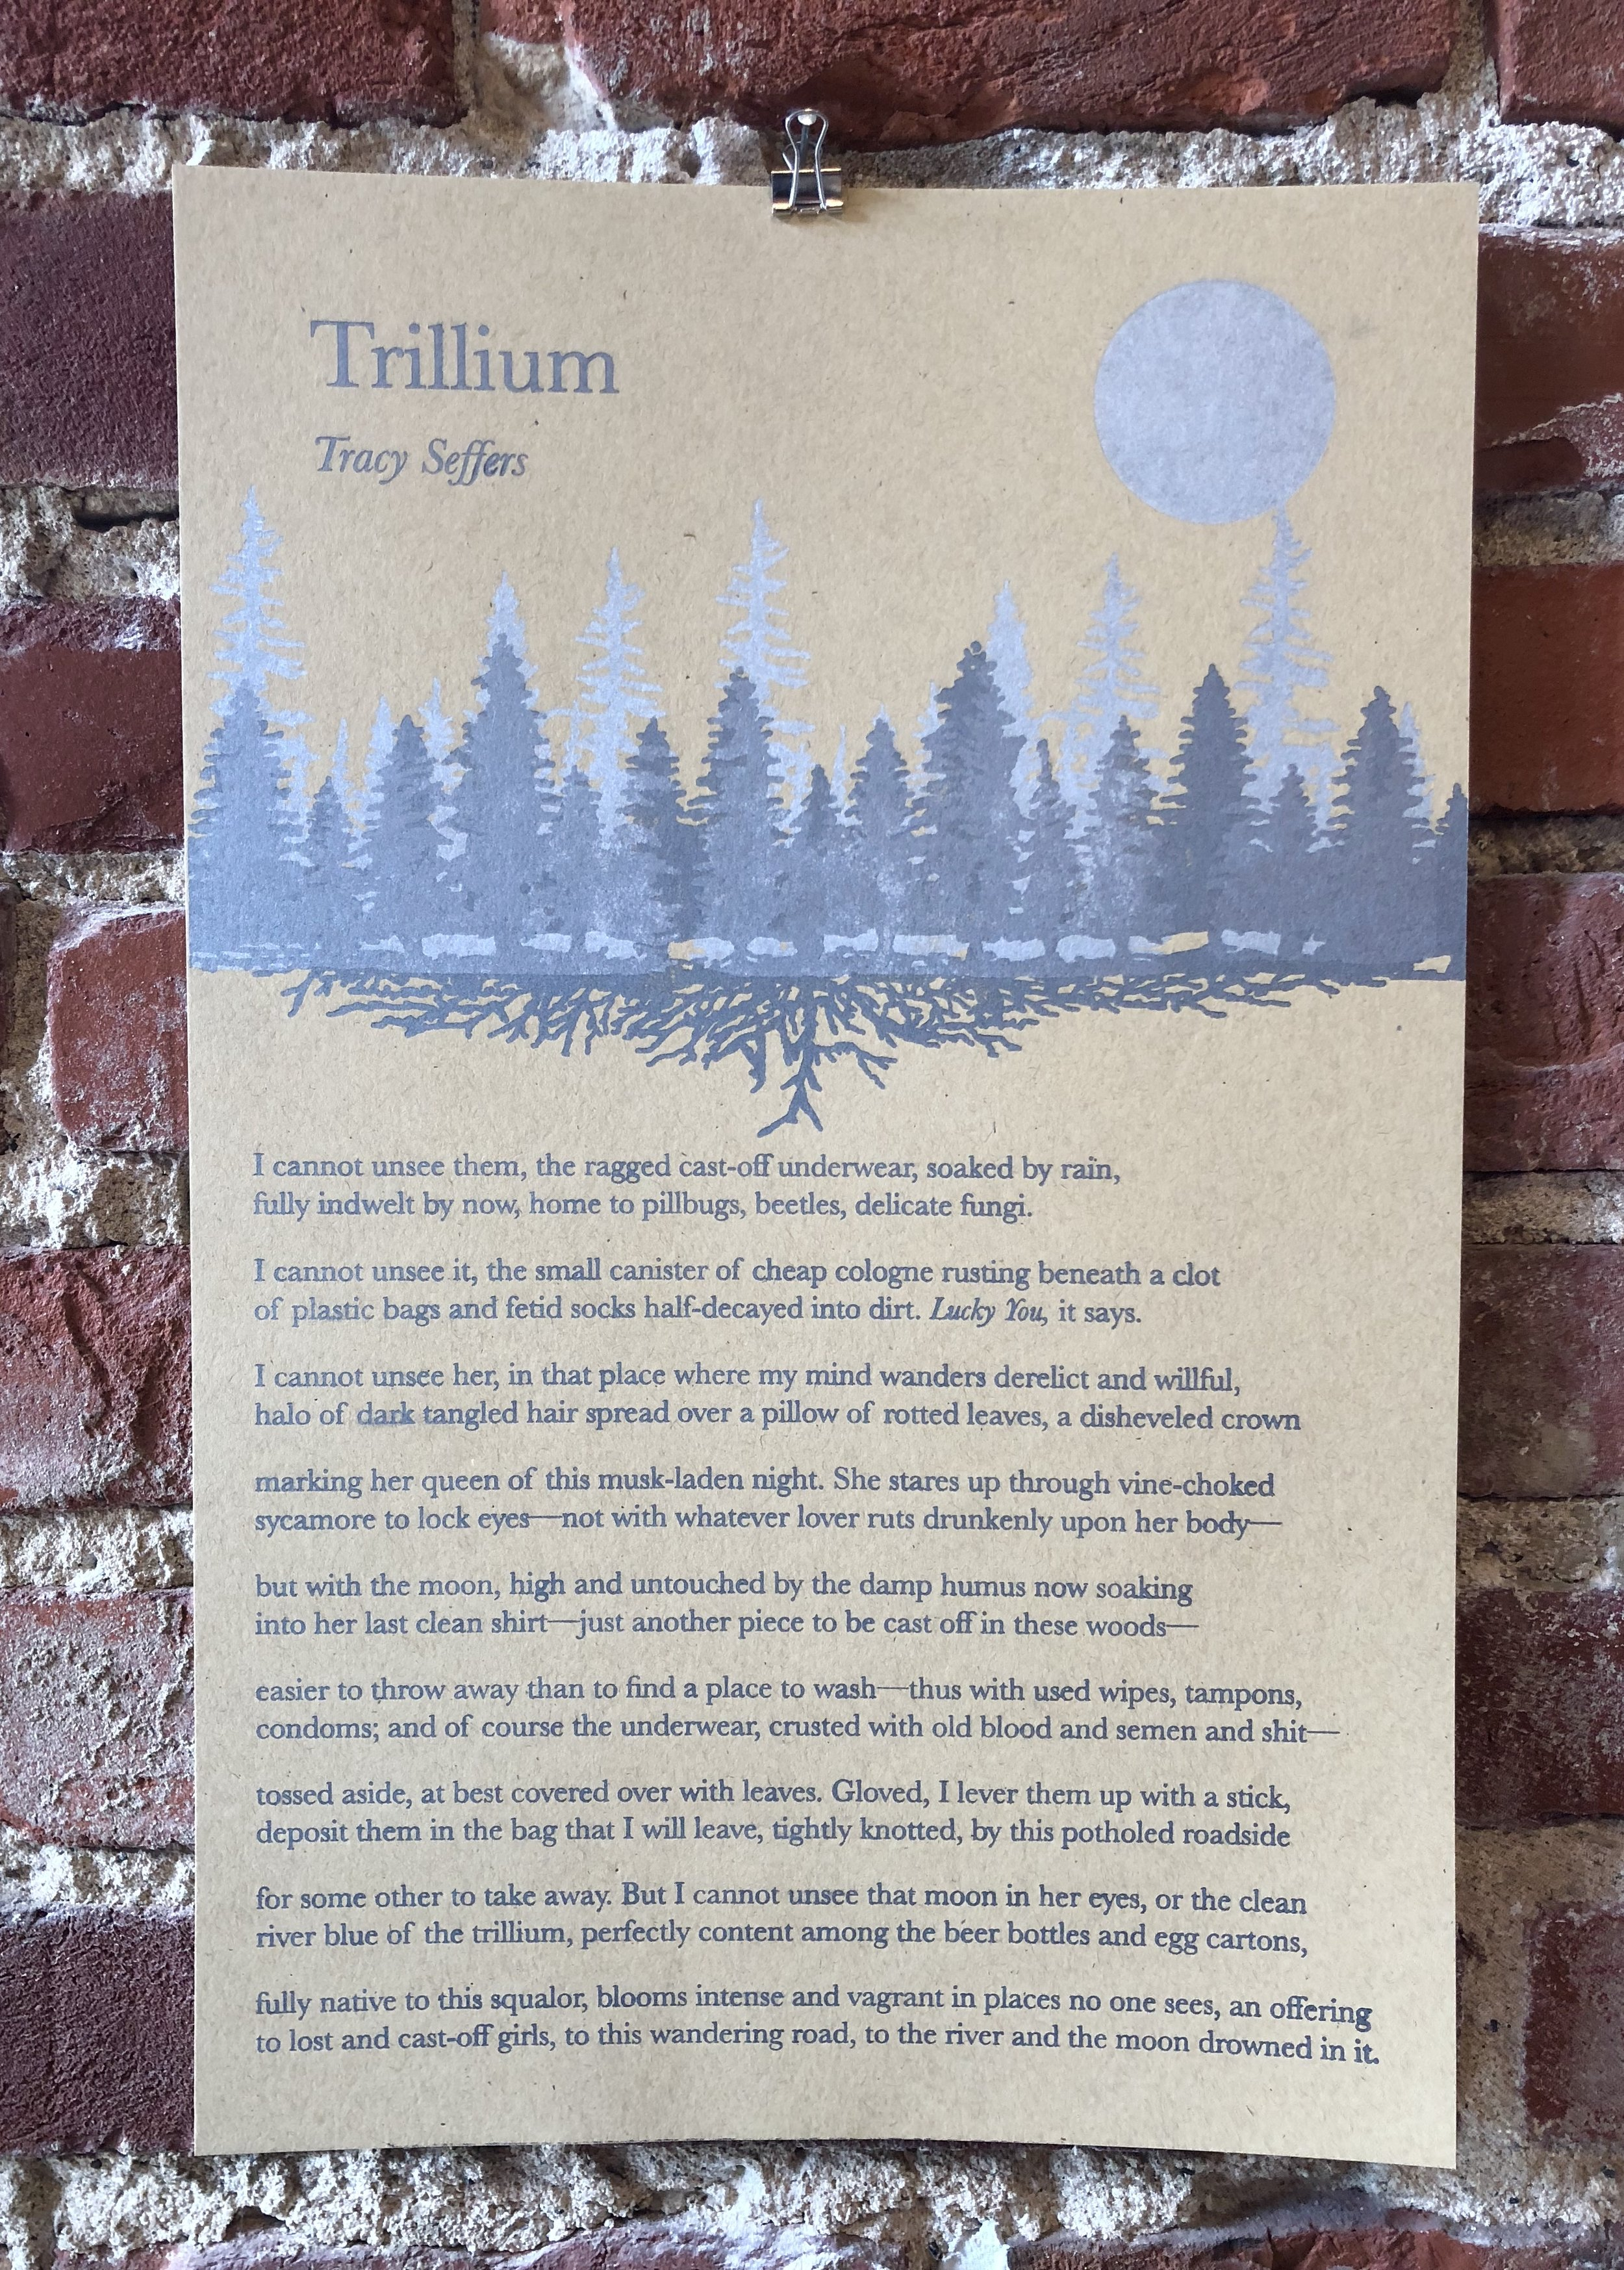 ORIGINAL ARTWORK AND BROADSIDE CREATED BY EMILY   SOKOLOSKY, CO-OWNER, ALONG WITH HER SISTER BETSY,   OF  BASE CAMP PRINTING , LETTERPESS & DESIGN, CHARLESTON, WEST VIRGINIA.